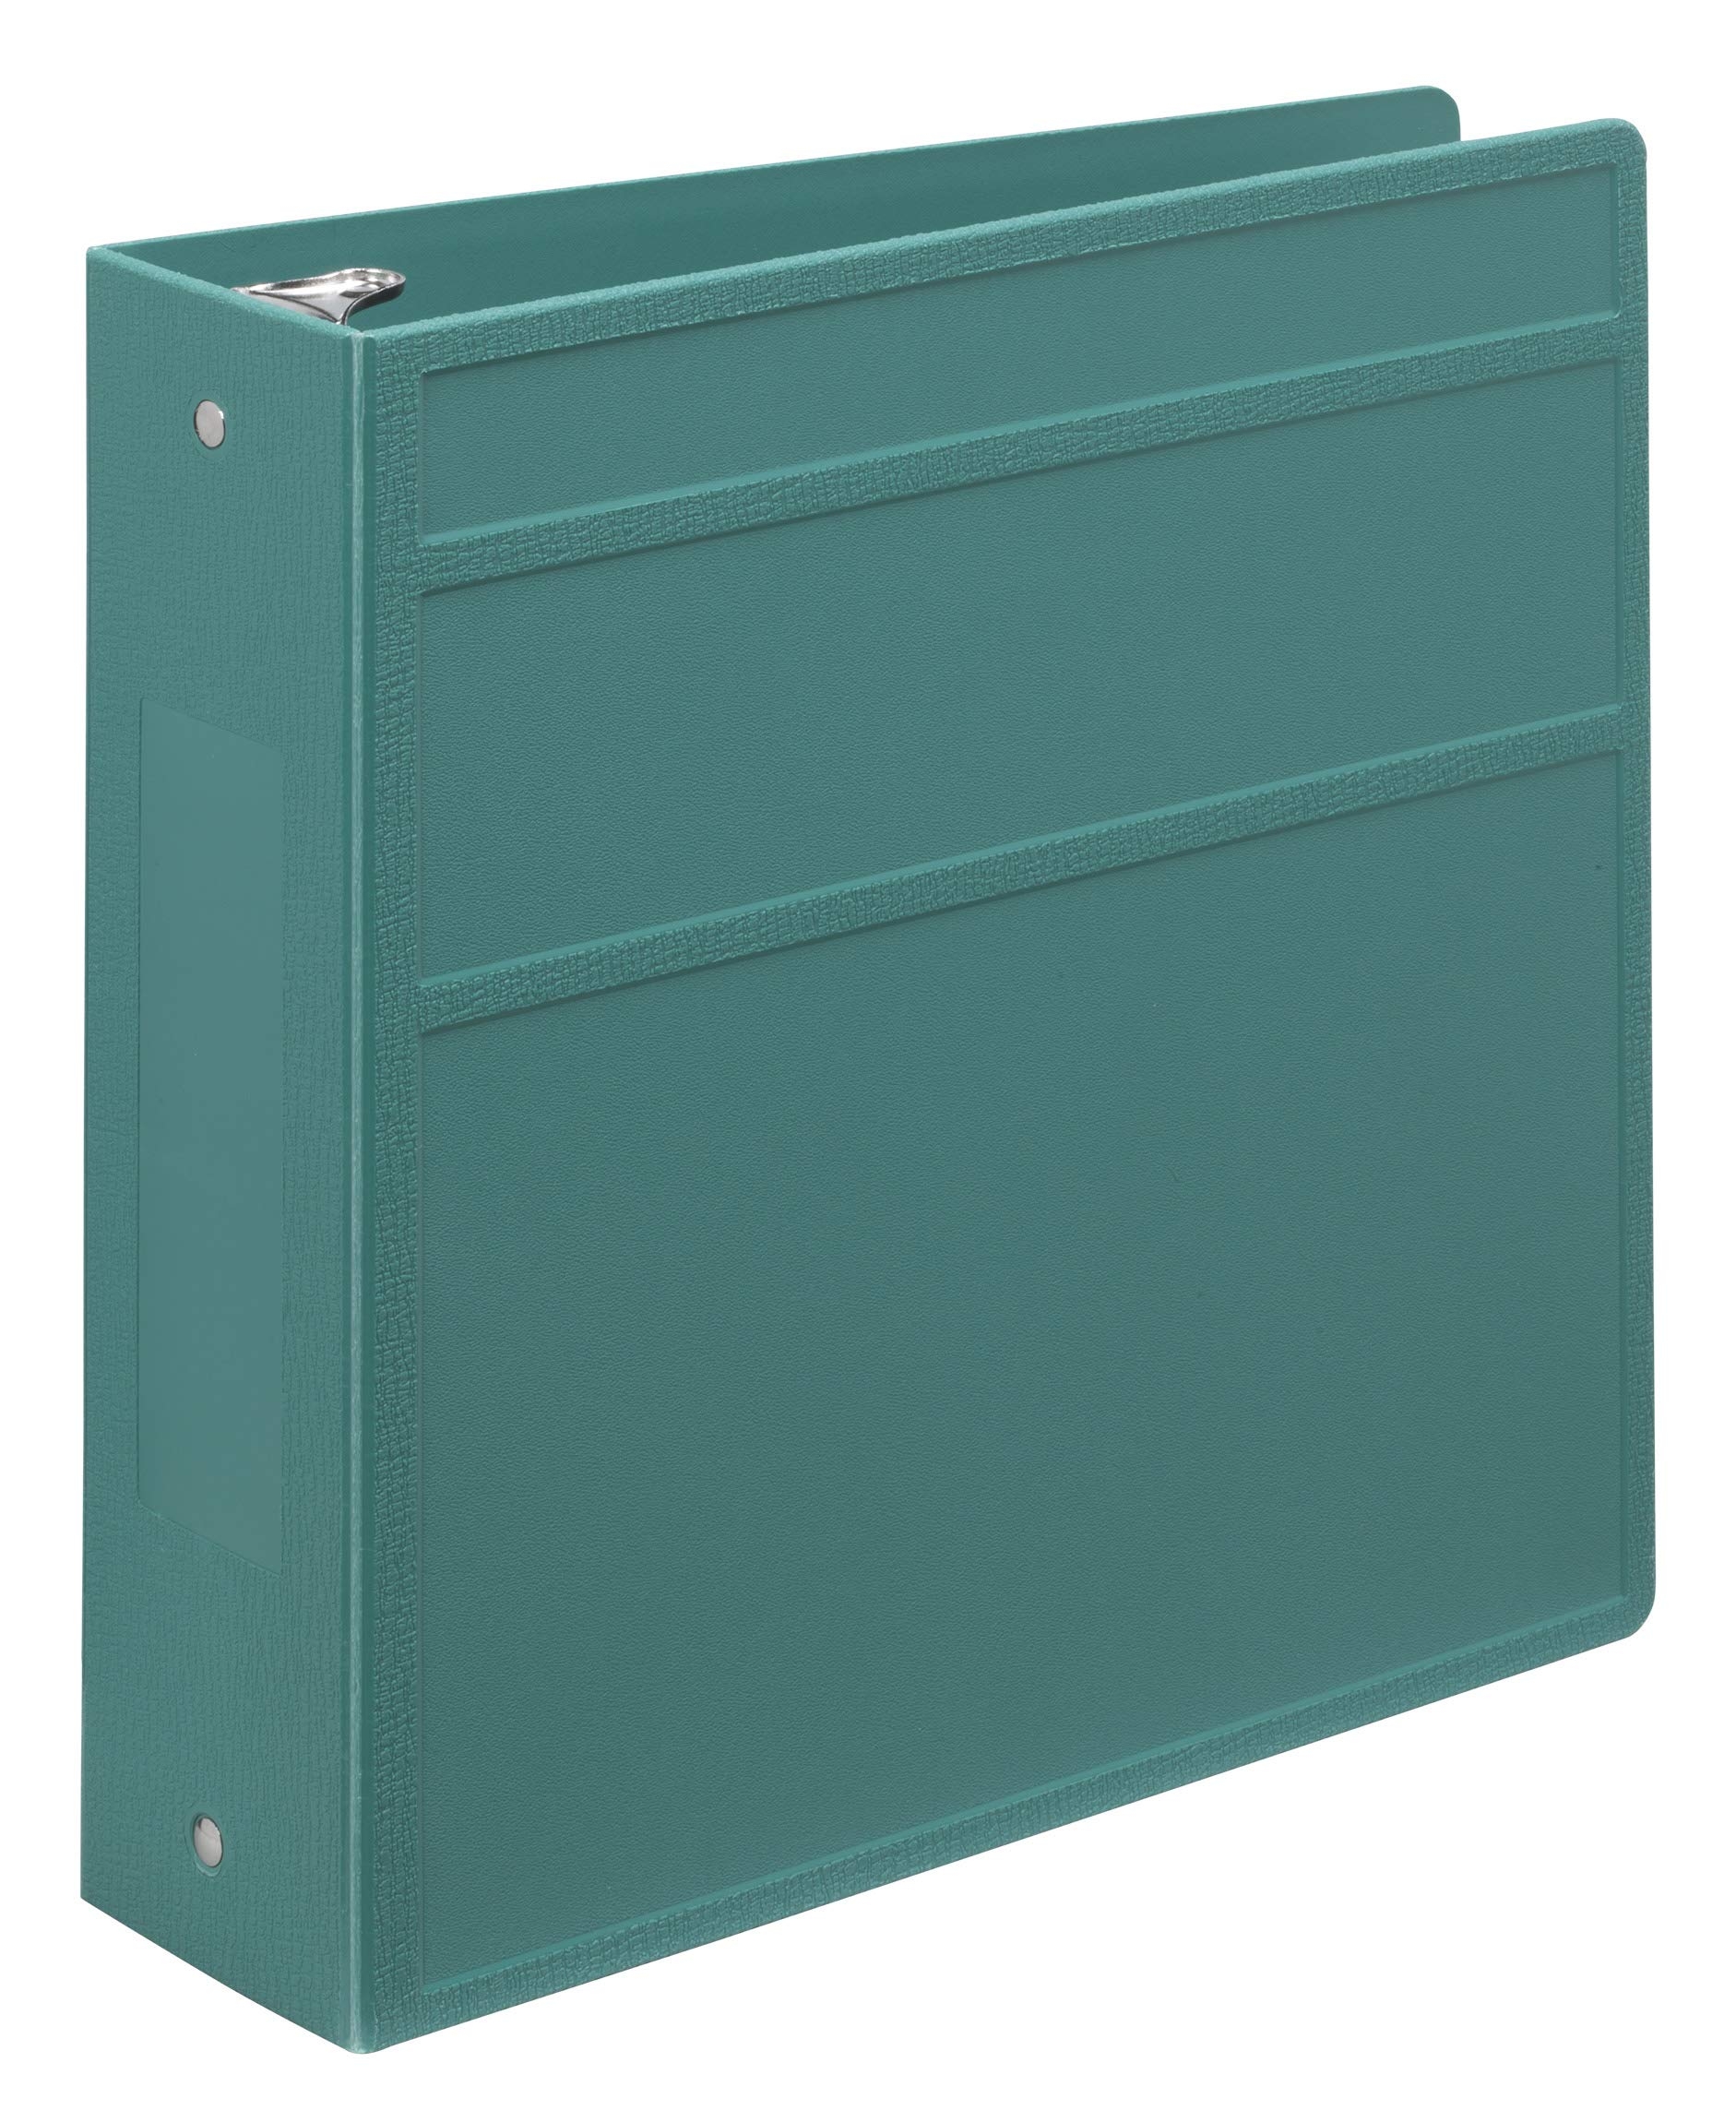 Carstens Heavy-Duty 3-Ring Binder - Side Opening (Teal, 3 Inch) by Carstens (Image #1)